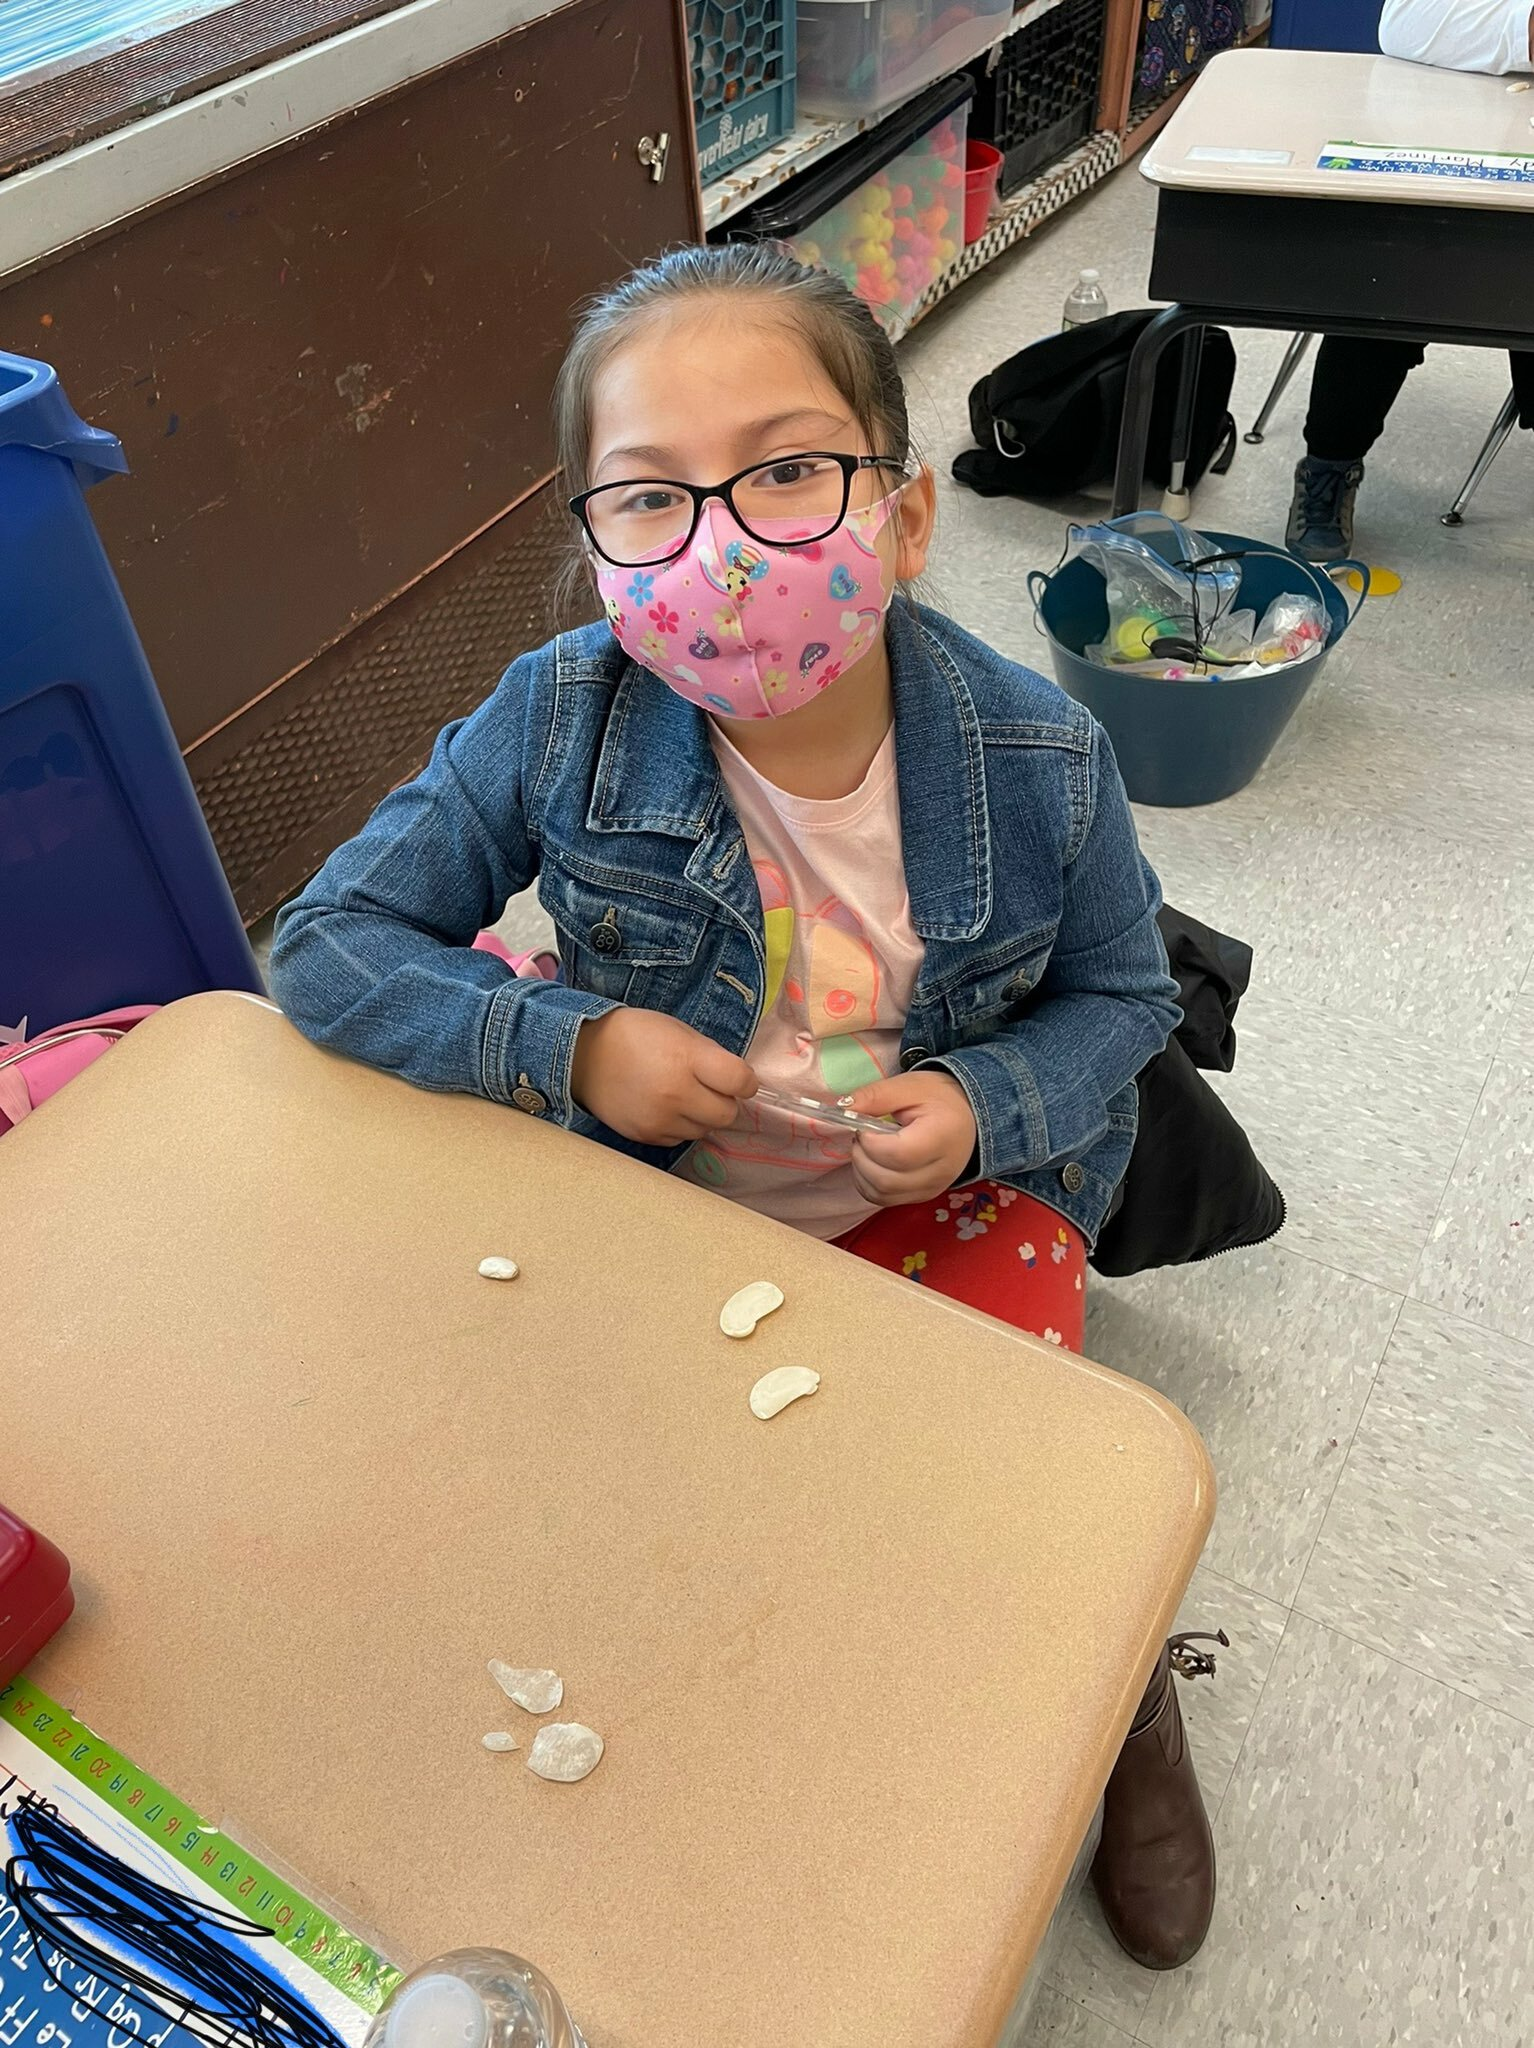 Hampton Bays Elementary School kindergartners in Kathleen Palmieri's class have been studying plant seeds. They recently soaked lima bean seeds in water, removed the seed coat and explored the various parts of the seed.